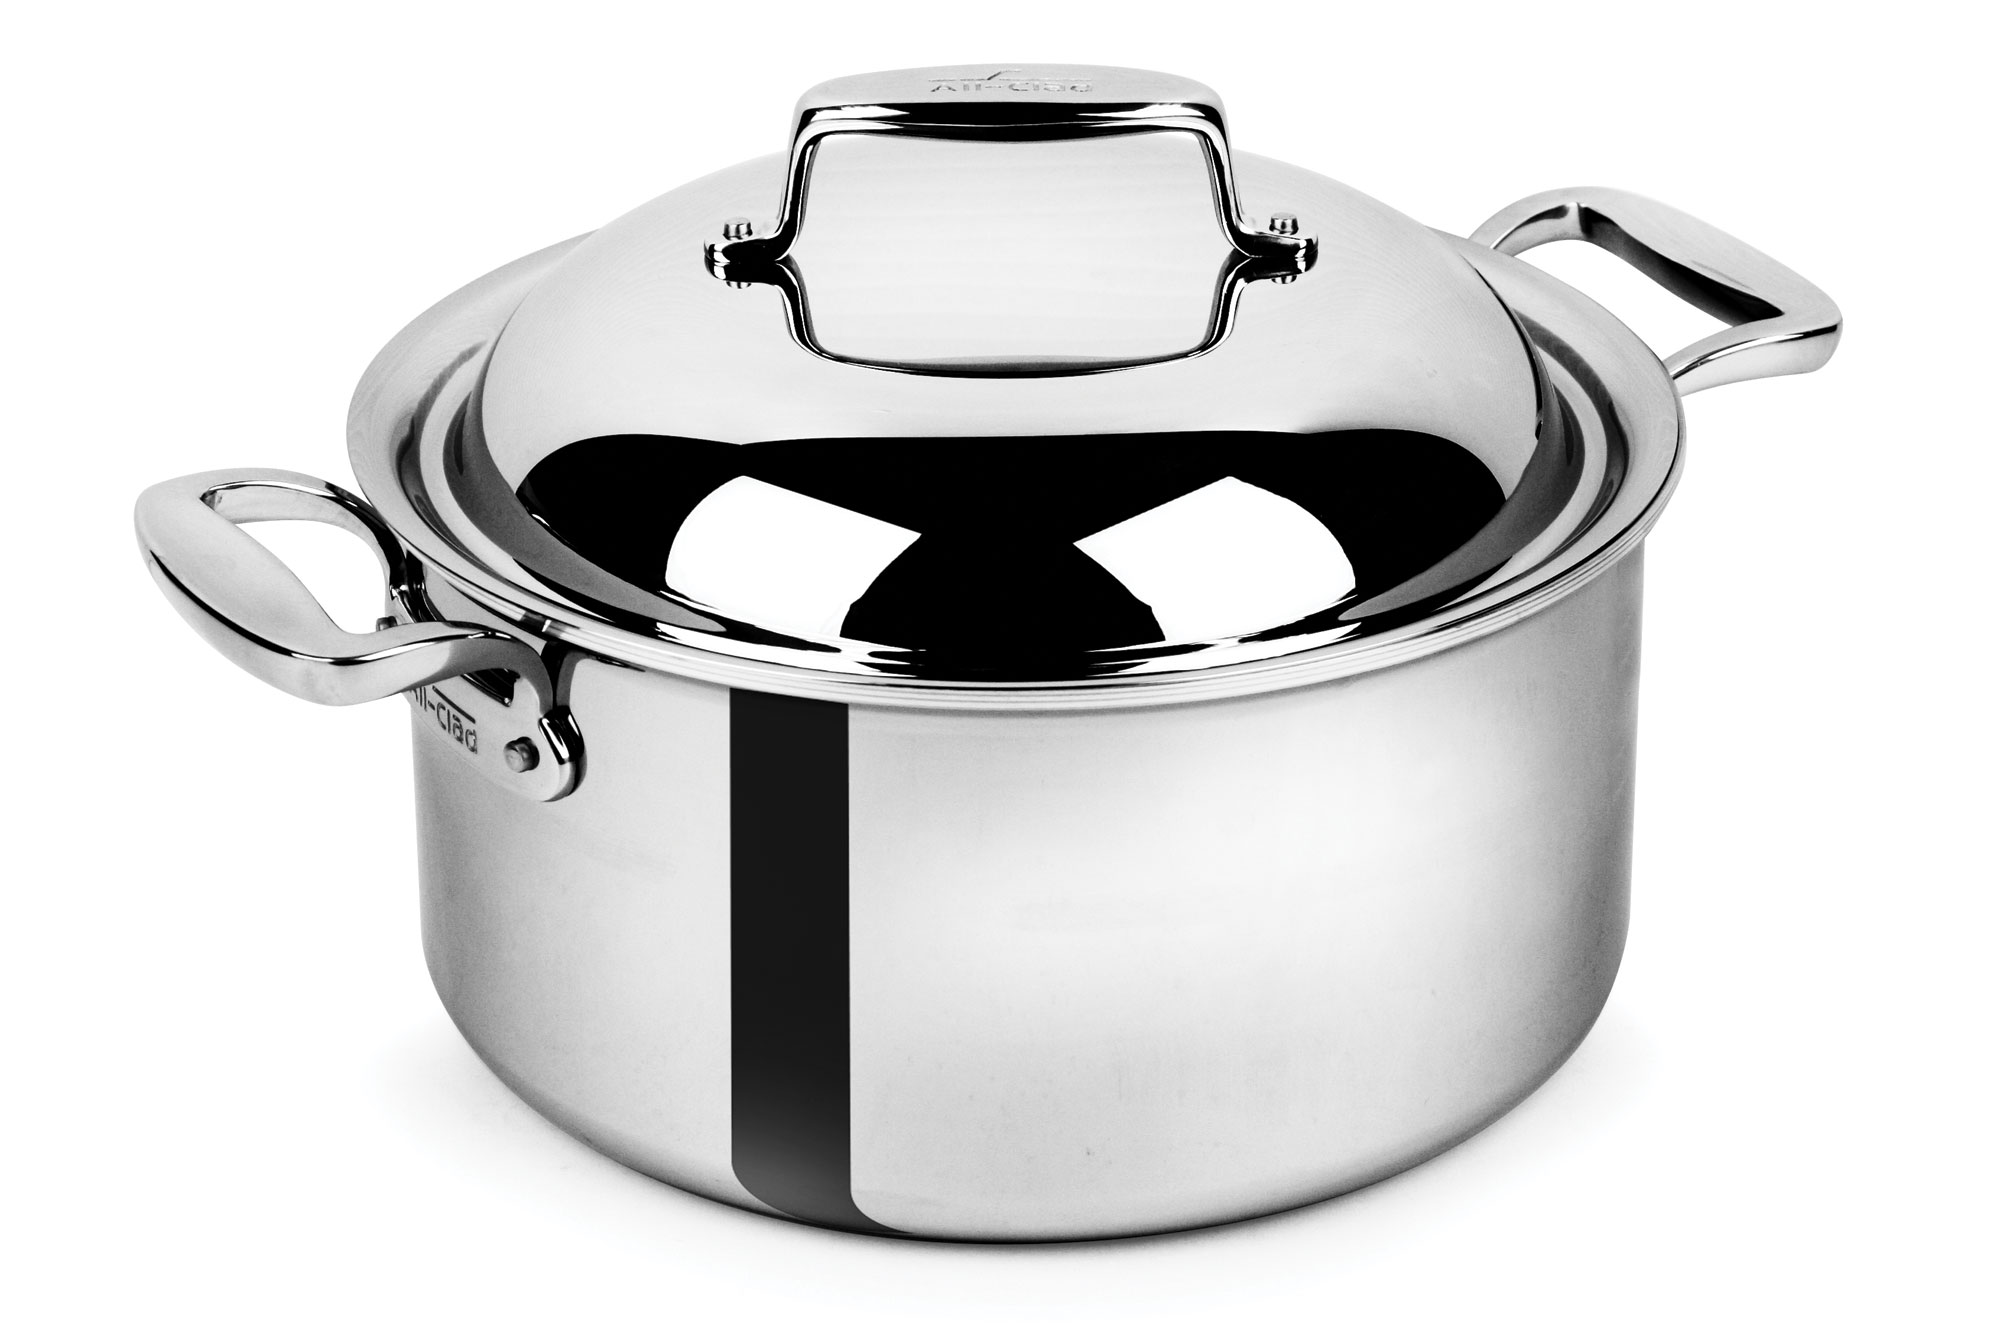 All Clad D7 Stainless Steel Round Dutch Oven 8 Quart